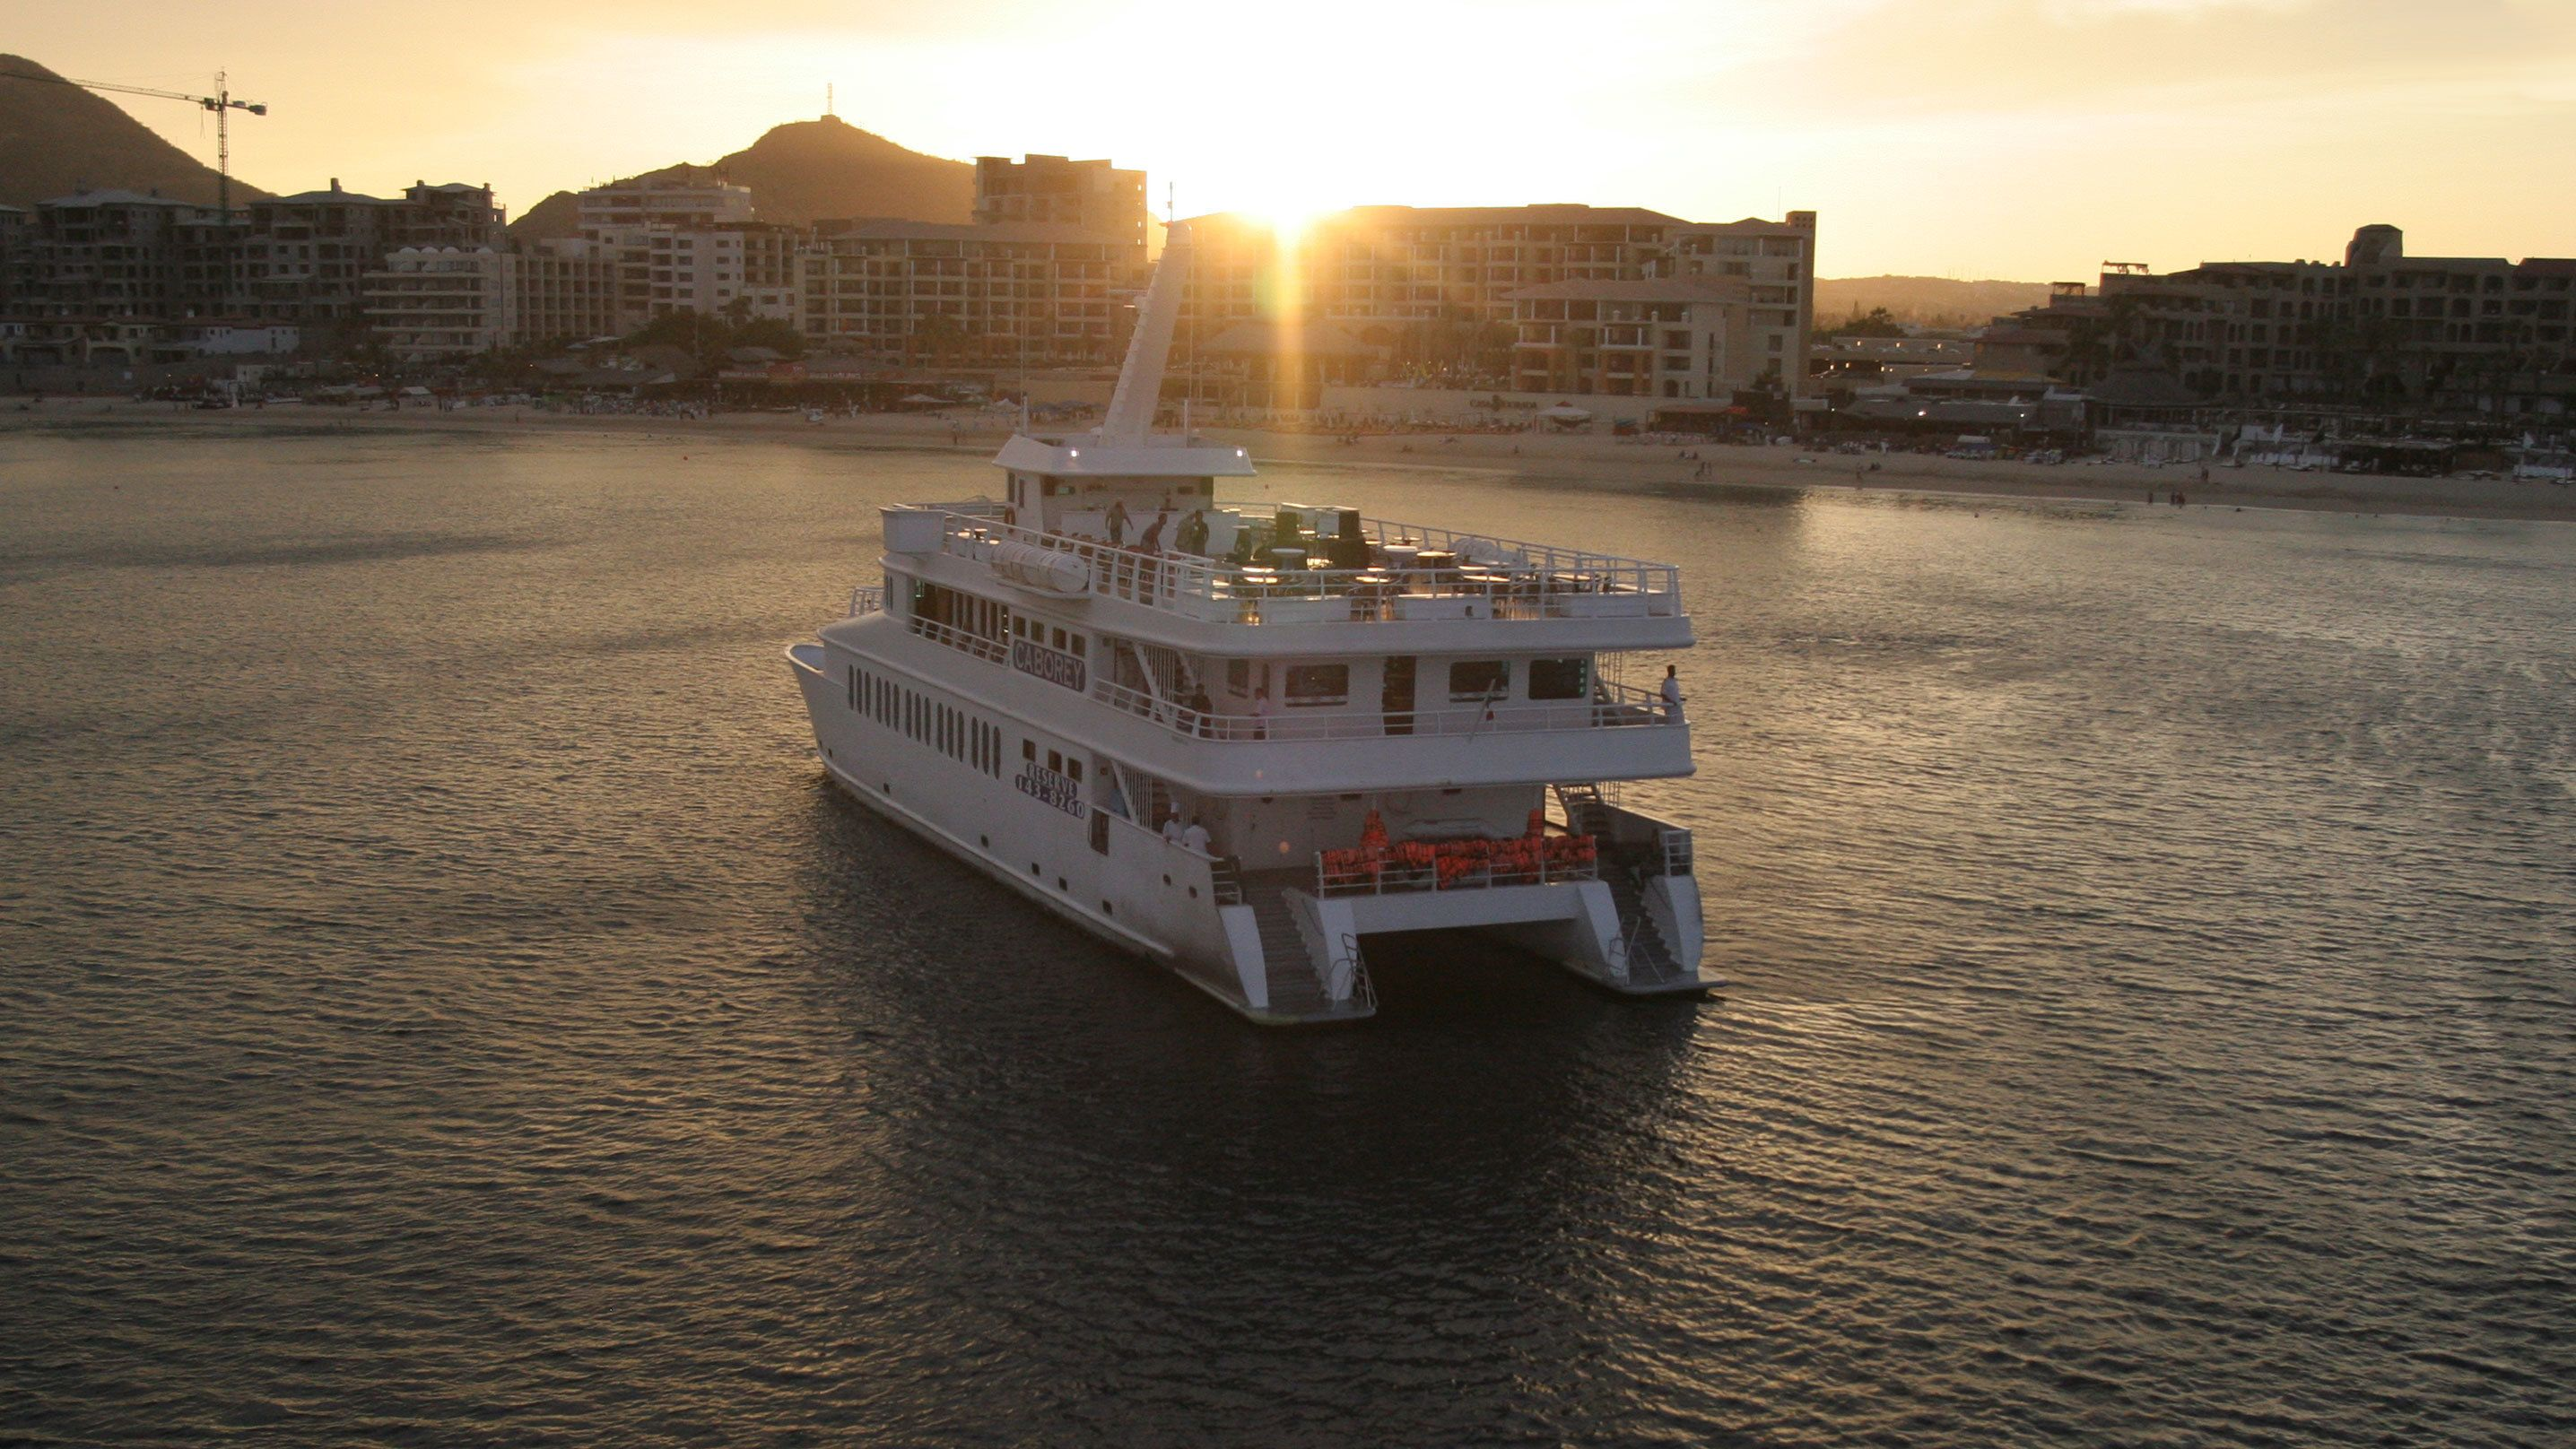 Caborey Sunset Dinner Cruise with Live Music & Entertainment